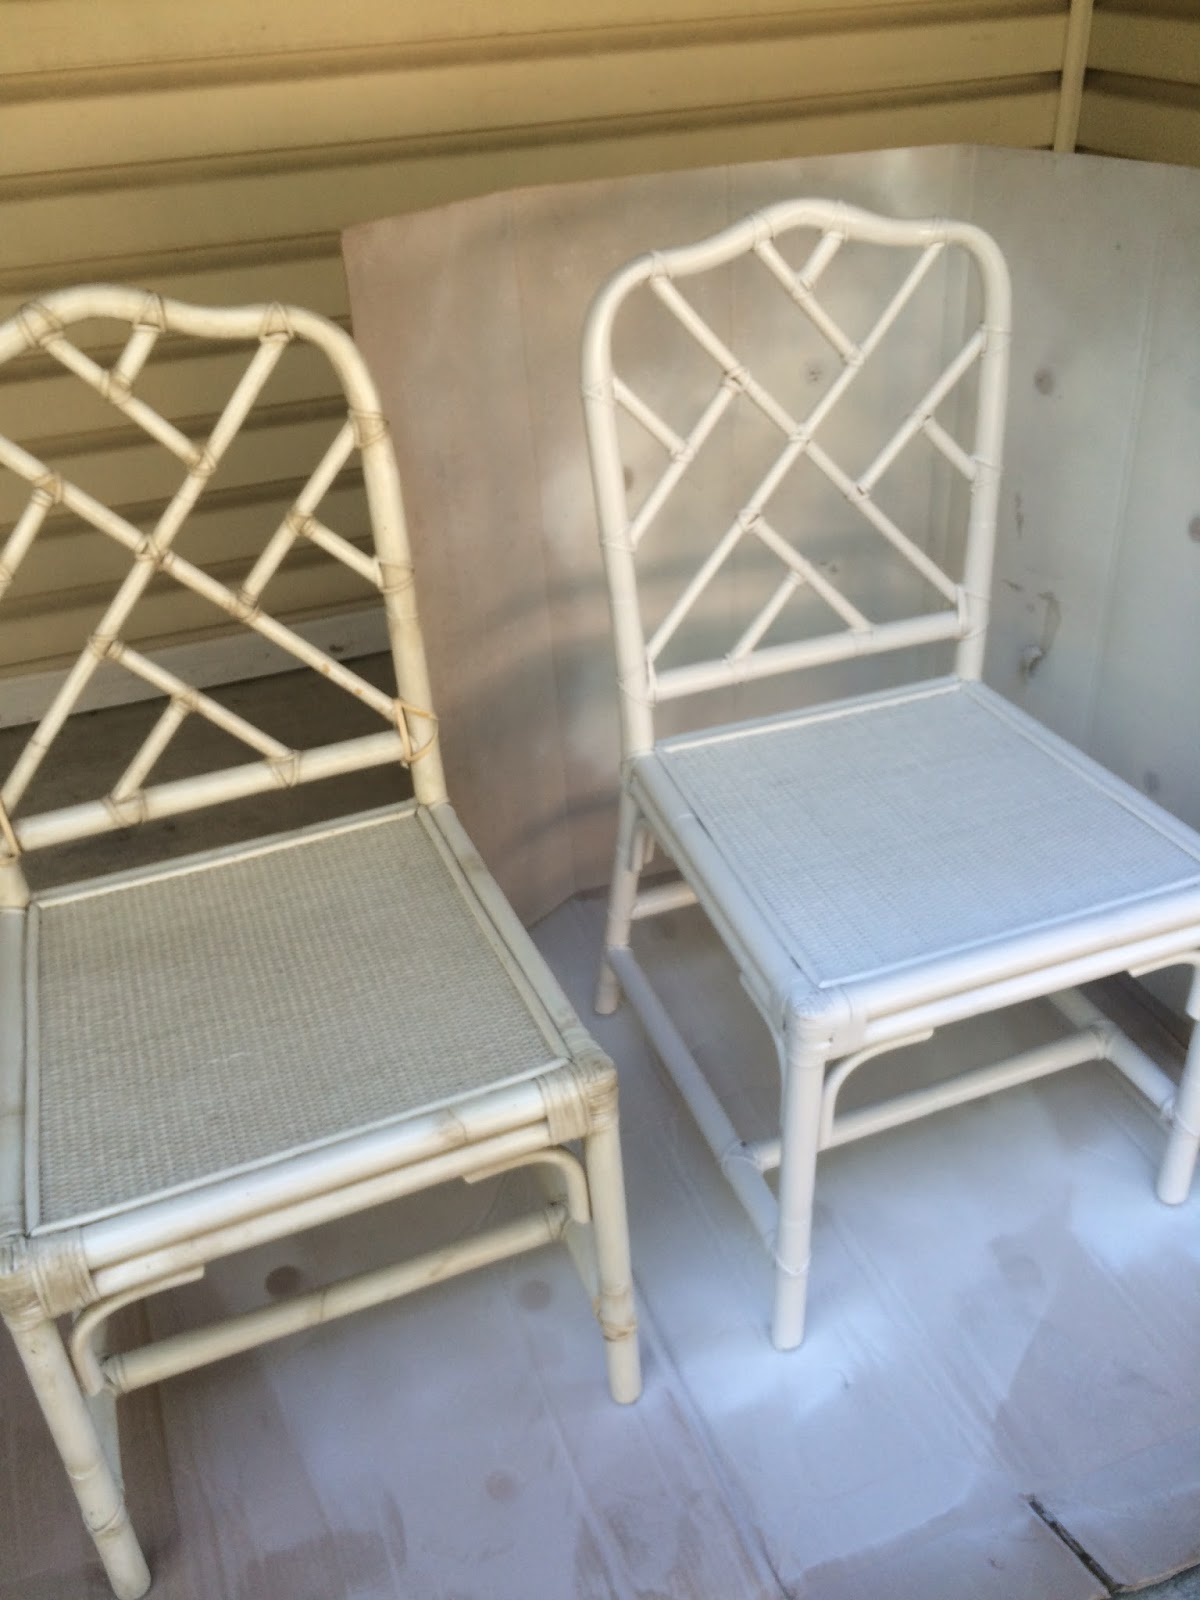 Bamboo chippendale chairs - Here Is One Chair Before Painting Next To A Chair That Had One Coat Of White Paint Even One Coat Made Such A Huge Difference